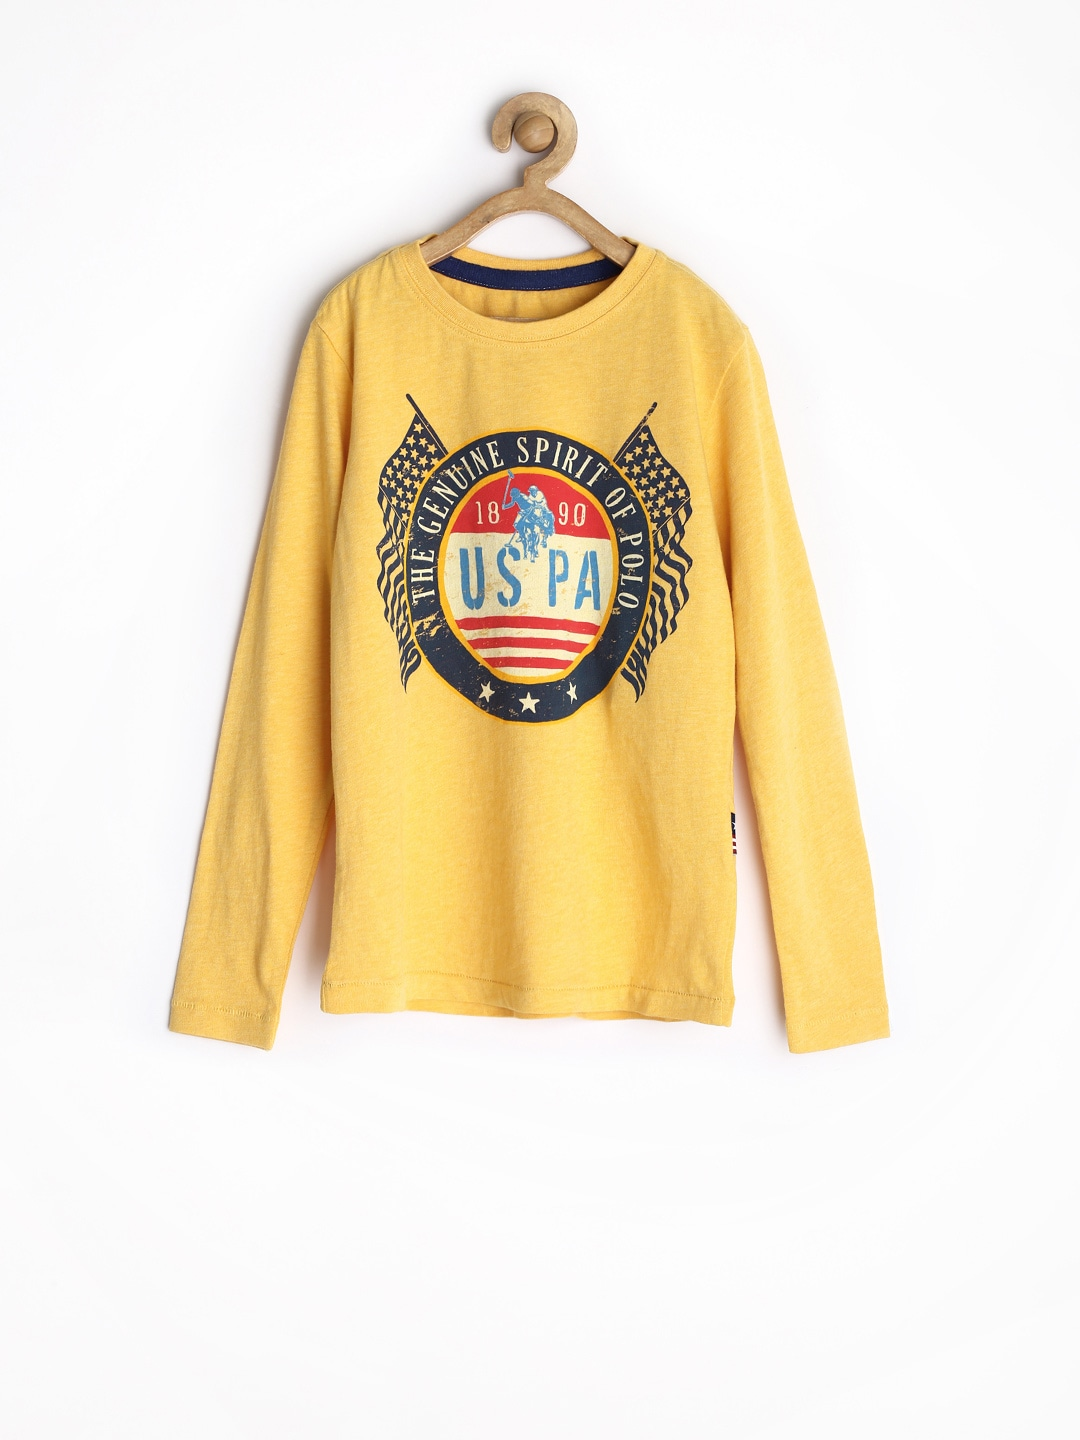 U.S. Polo Assn. Kids Boys Mustard Yellow Printed T-shirt